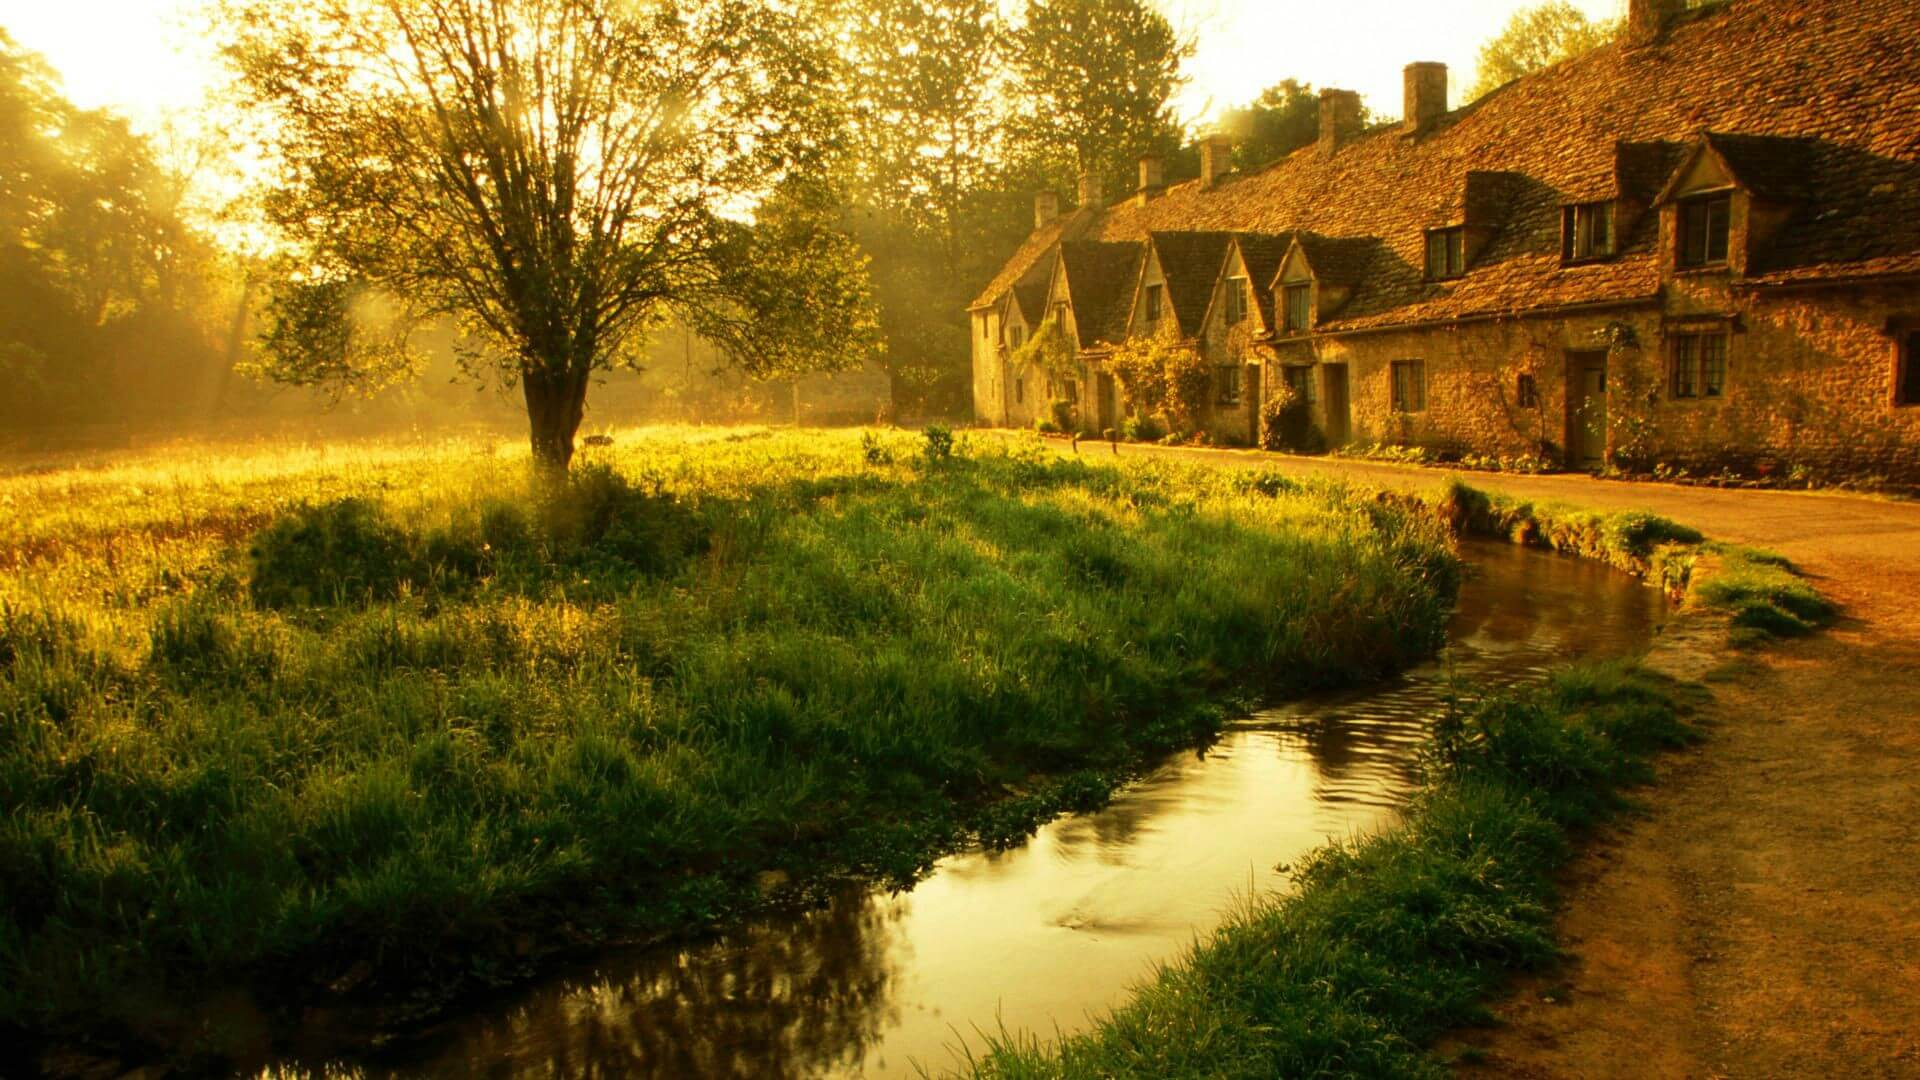 dream home Beautiful High Resolution Desktop Wallpaper & HD Backgrounds